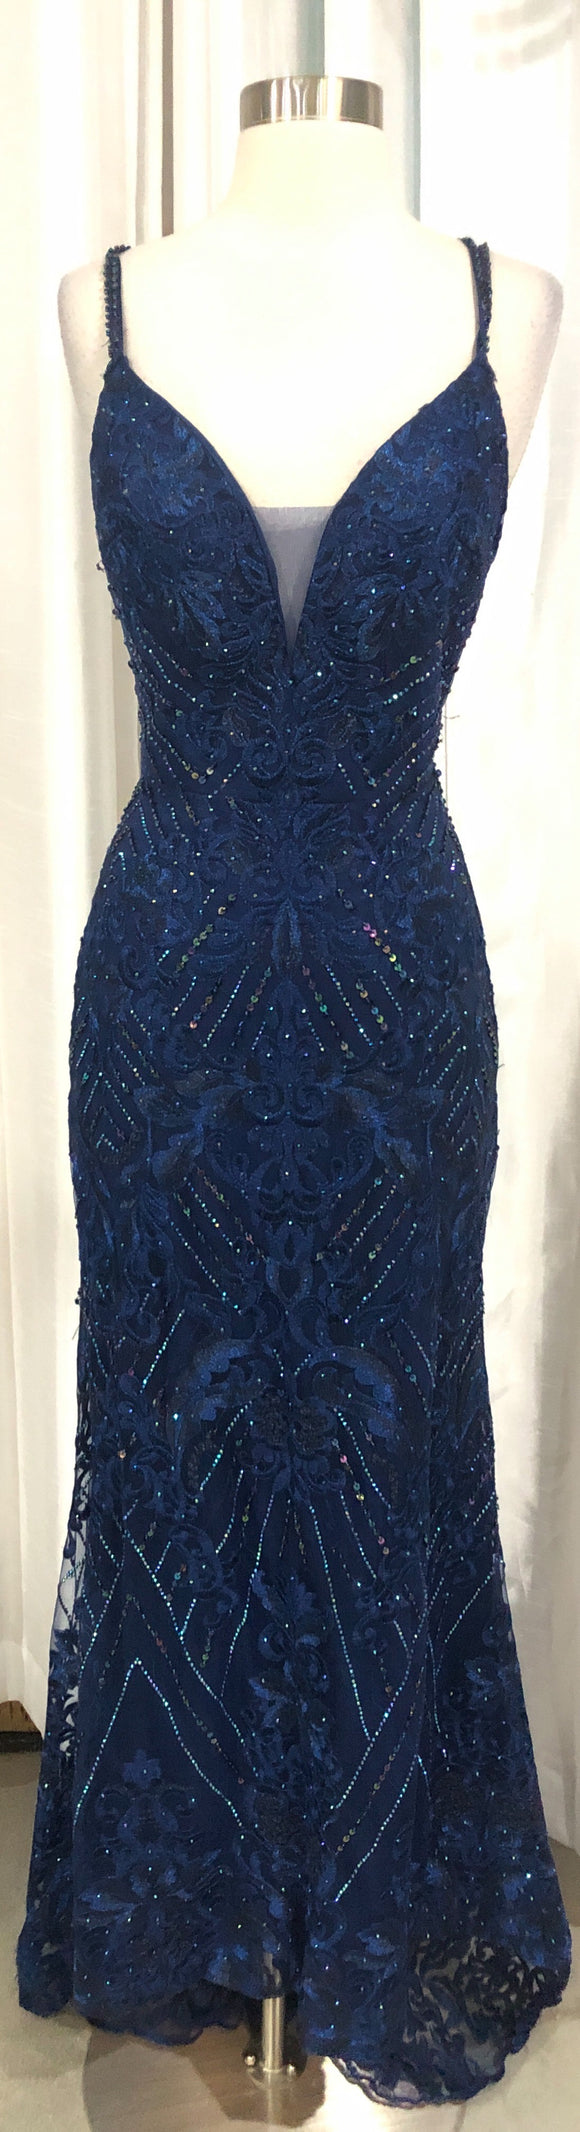 ELLIE WILDE Long Navy Form Fitting Gown Size 10